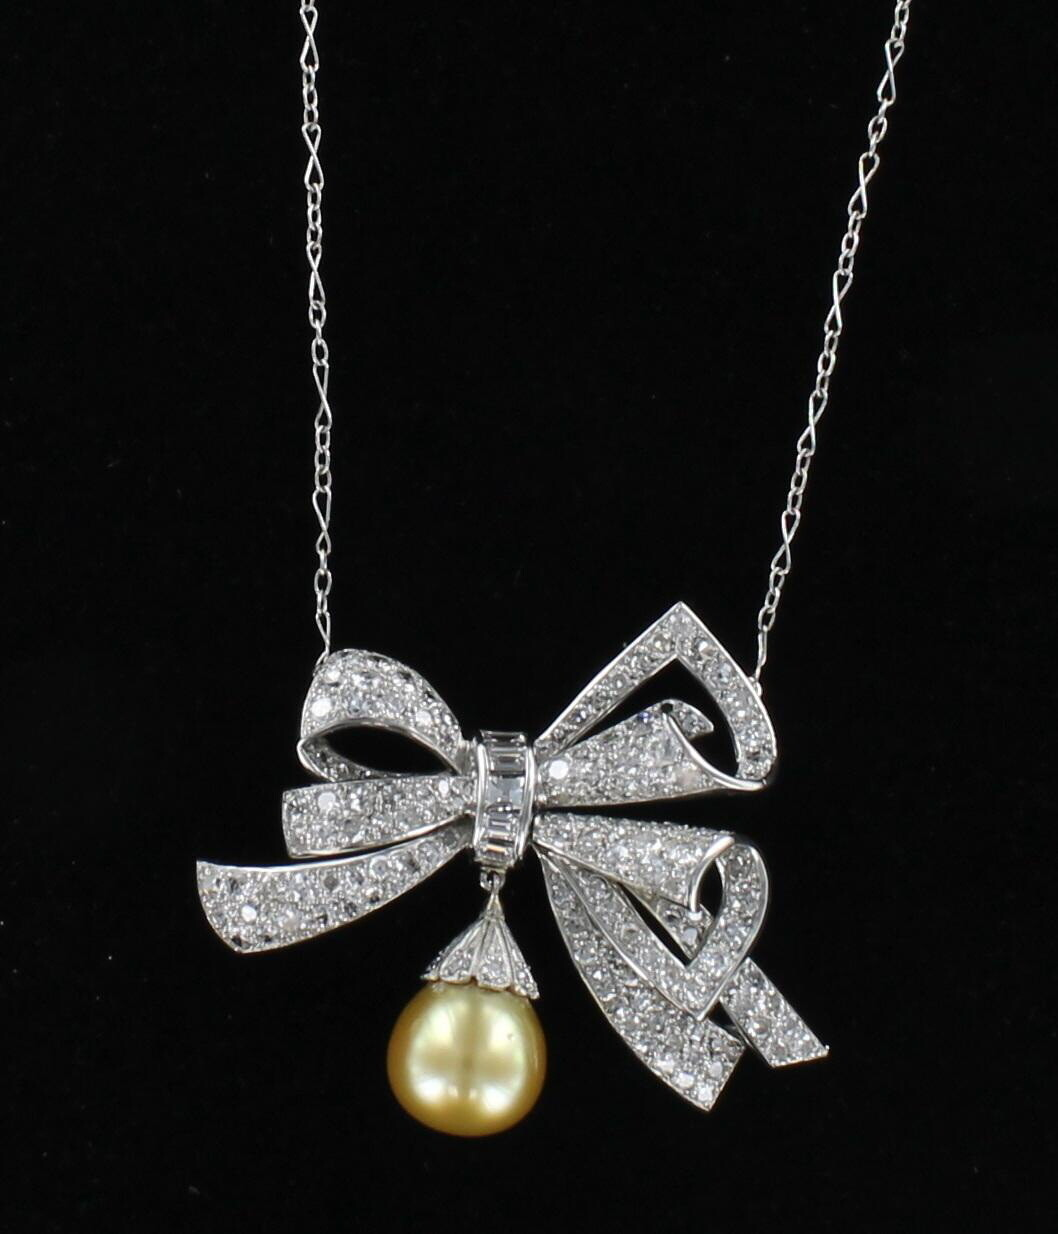 PLATINUM DIAMOND BOW WITH GOLDEN PEARL NECKLACE